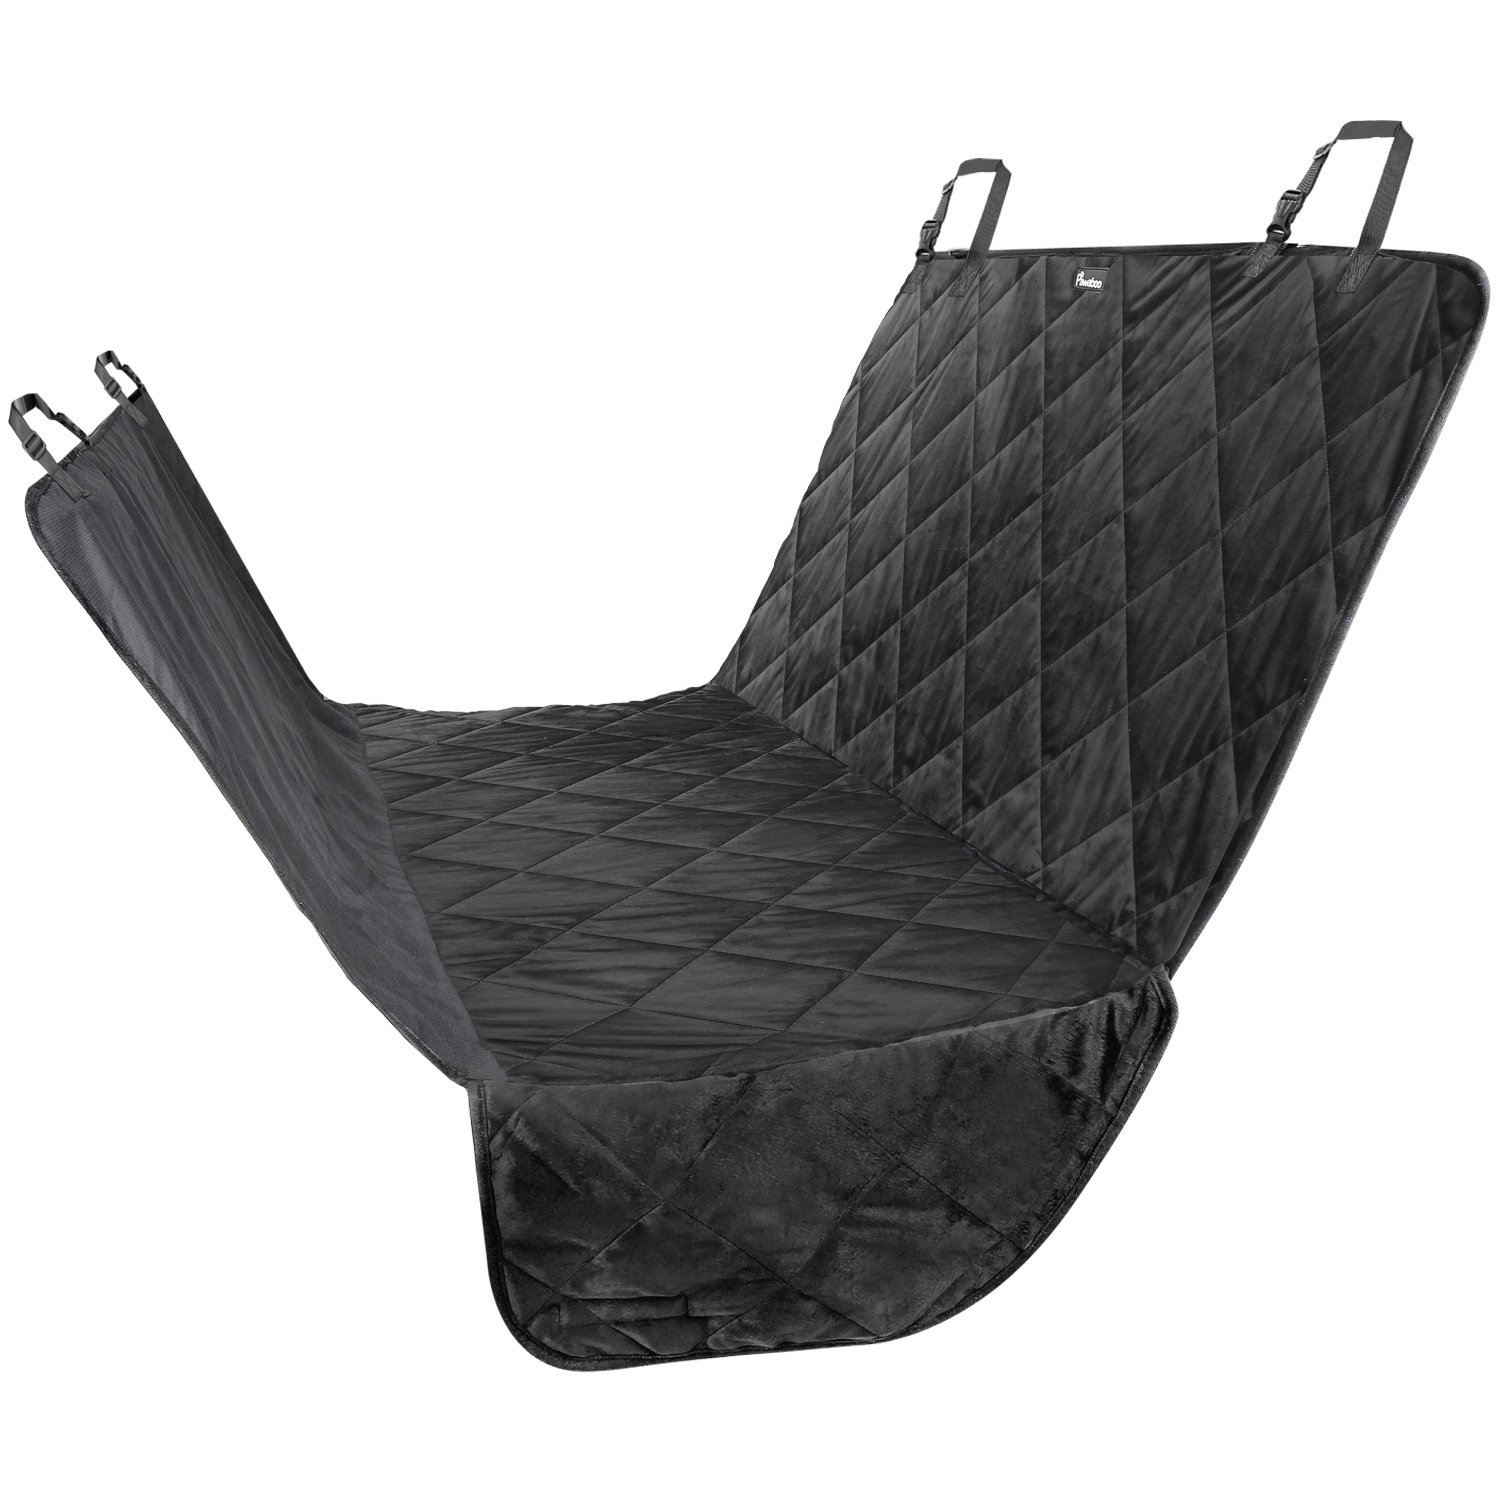 Amazon Pawaboo Pet Car Seat Cover Hammock Style Dog Backing Water Resistant Non Slip For Cars Trucks Suvs Large Size